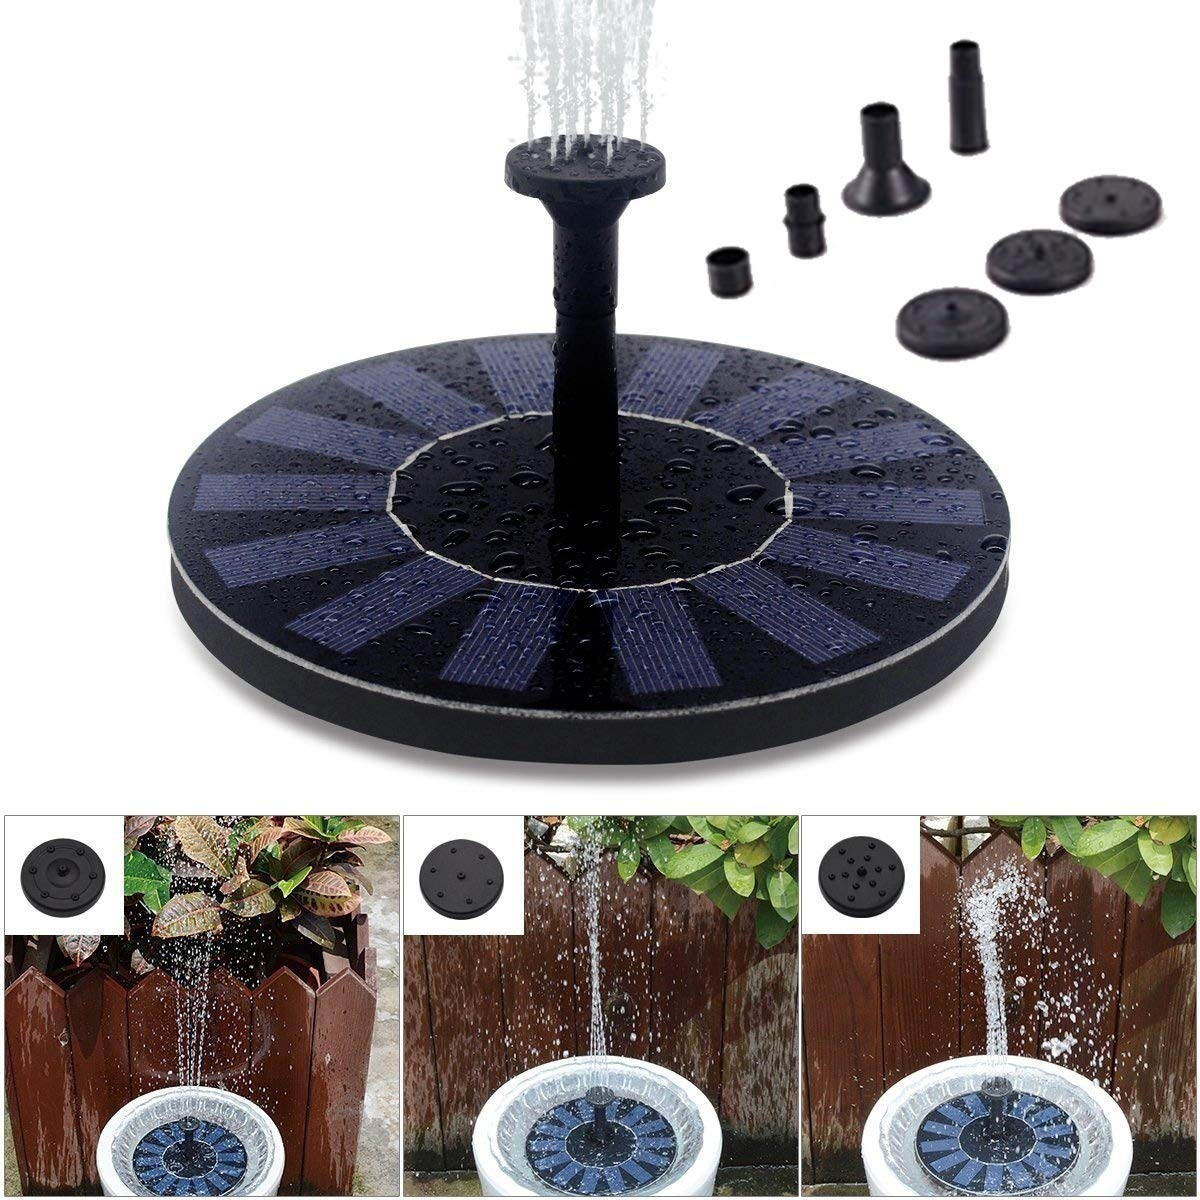 Solar Powered Fountain Pump, 1.4W Water Fountain Birdbath Solar Powered Pump, Waterproof, Free Standing, Submersible Outdoor Water Pump by GOBEAUTY